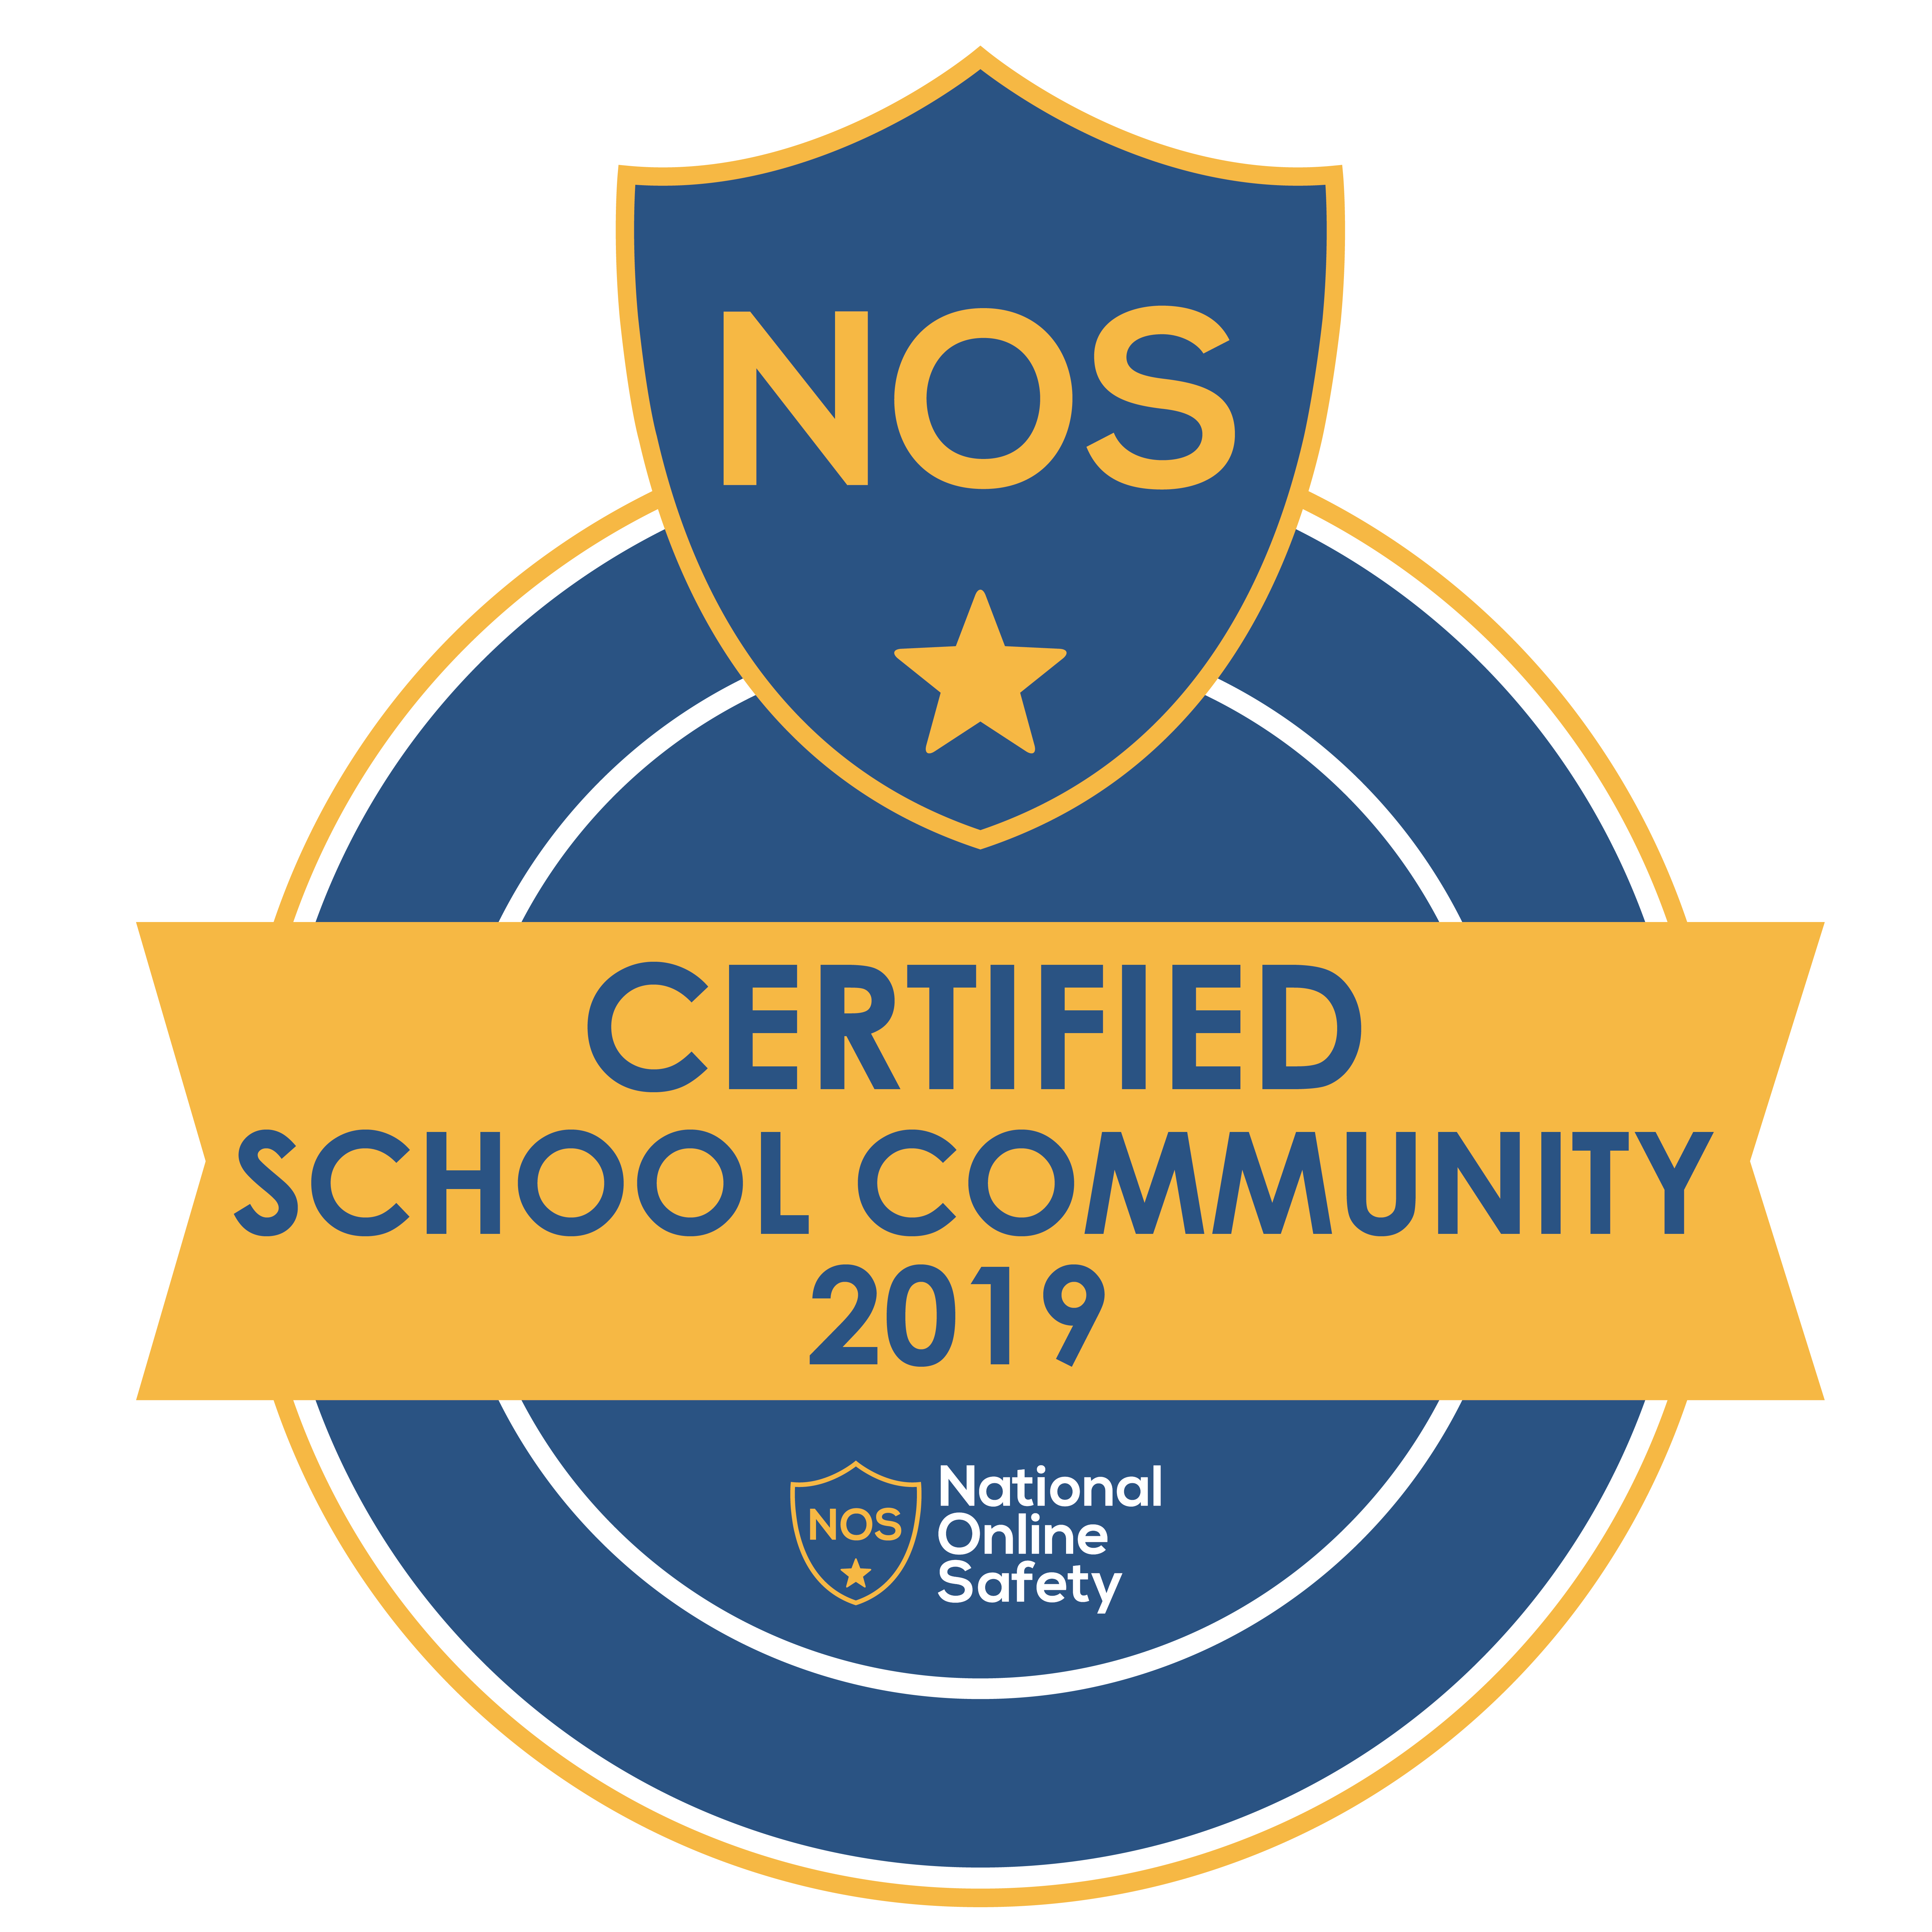 National Online Safety Certified School Community 2019